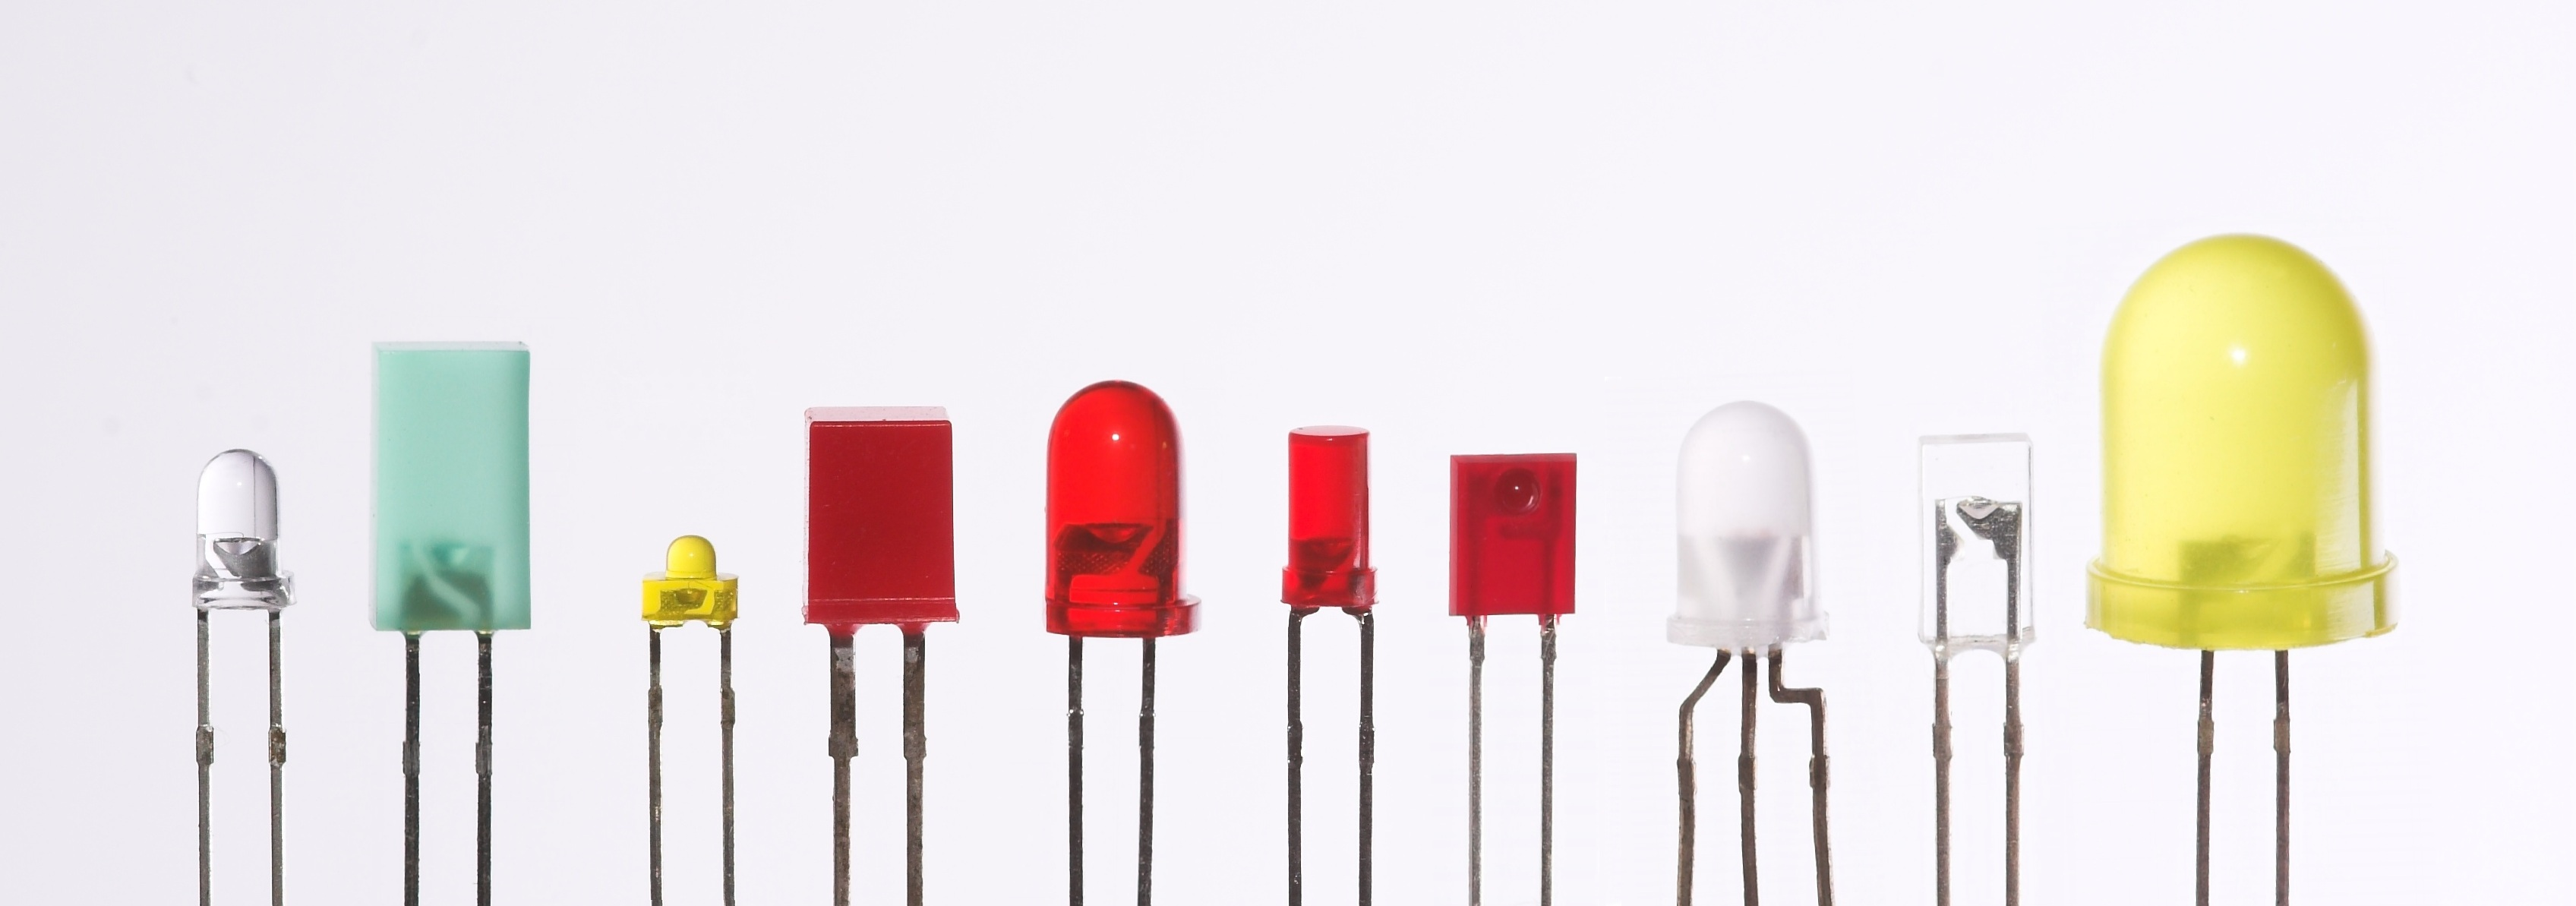 LED Technology on ceramic capacitor types